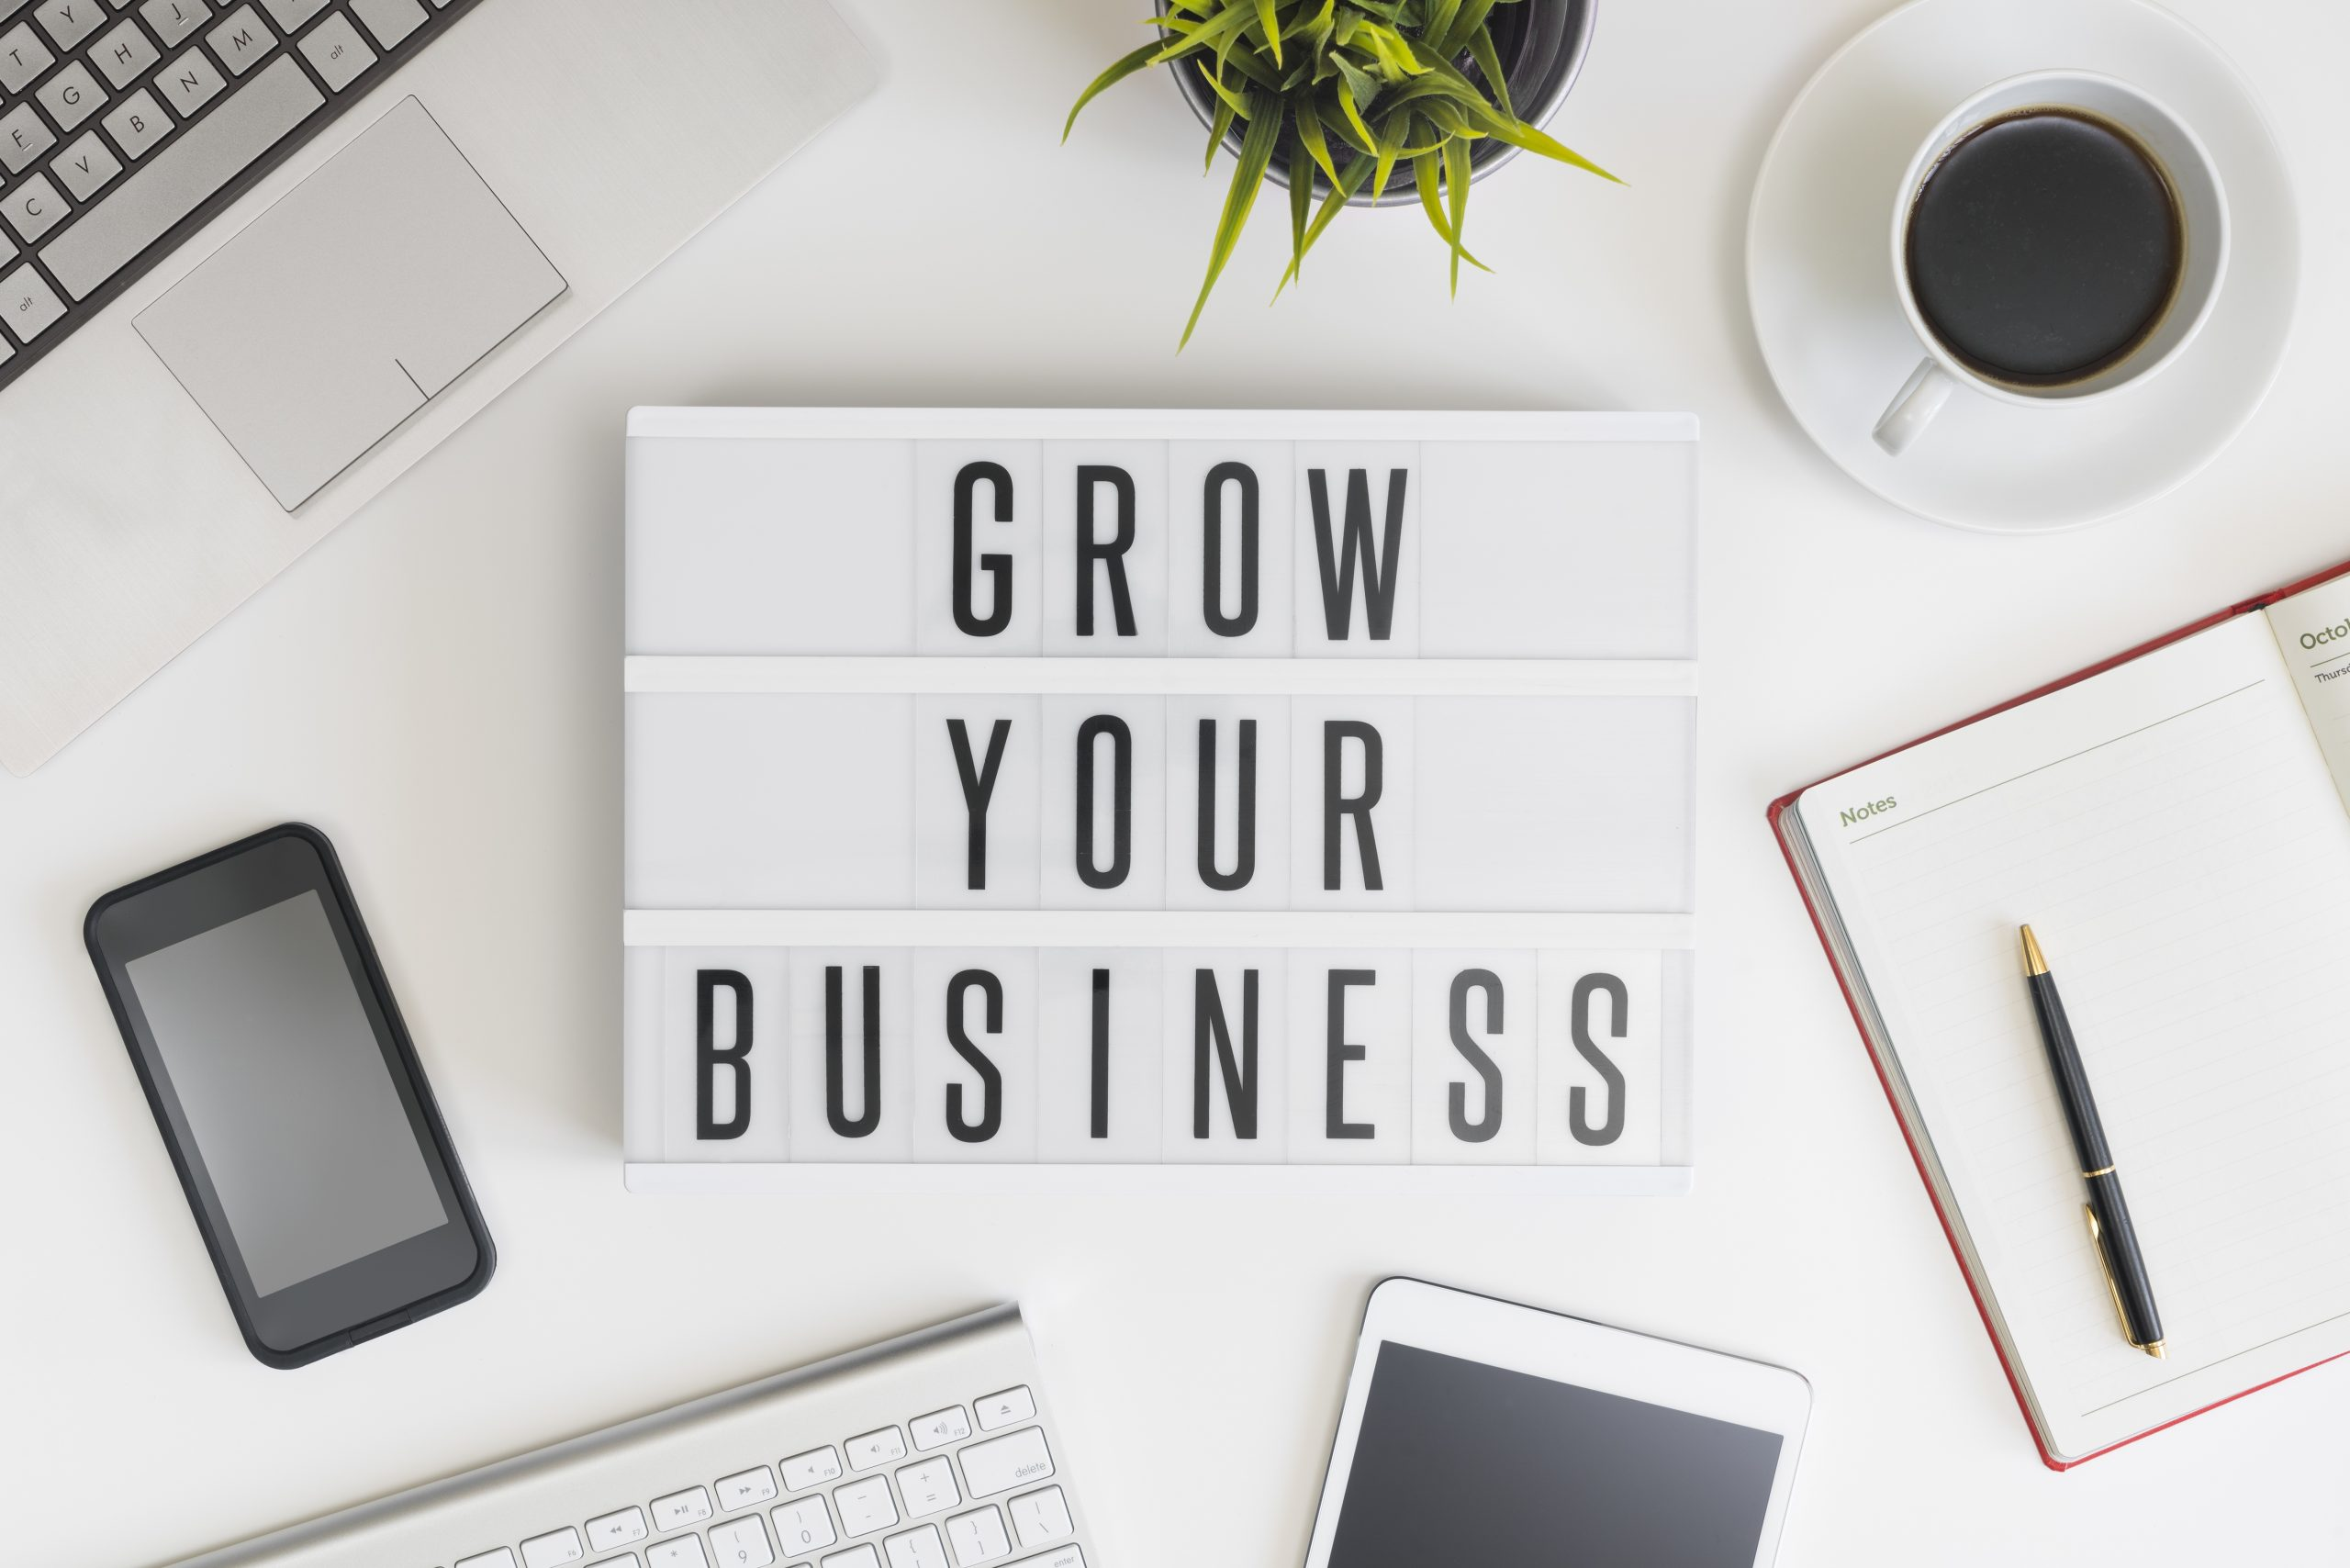 Roles play to enhance the growth of small business